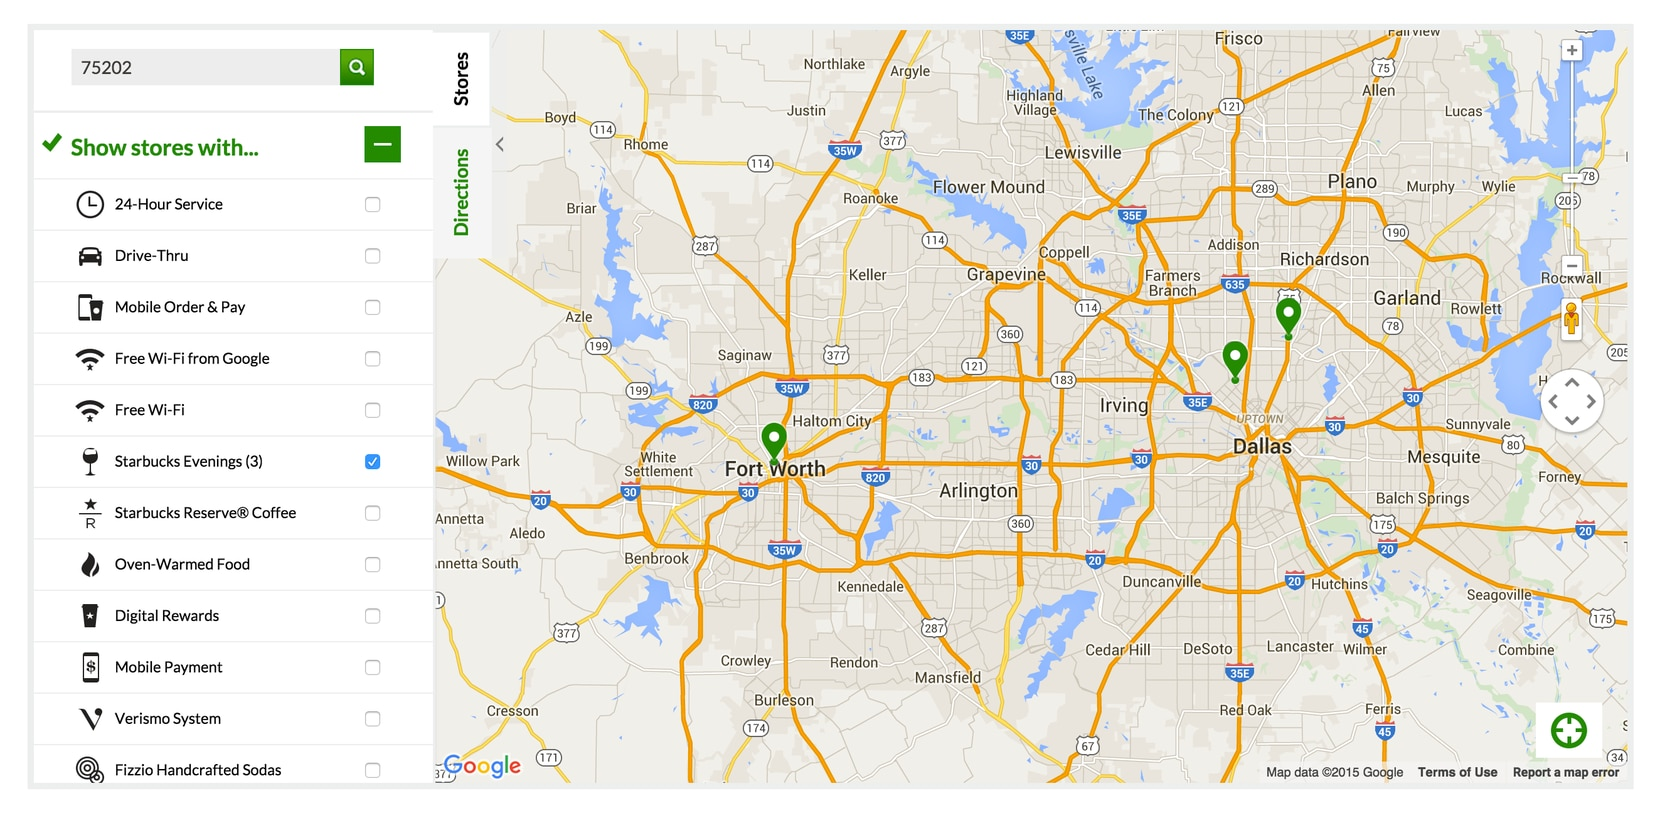 The Starbucks store locator shows three stores in the D-FW area serving new food and alcoholic beverages as of Tuesday, Nov. 3